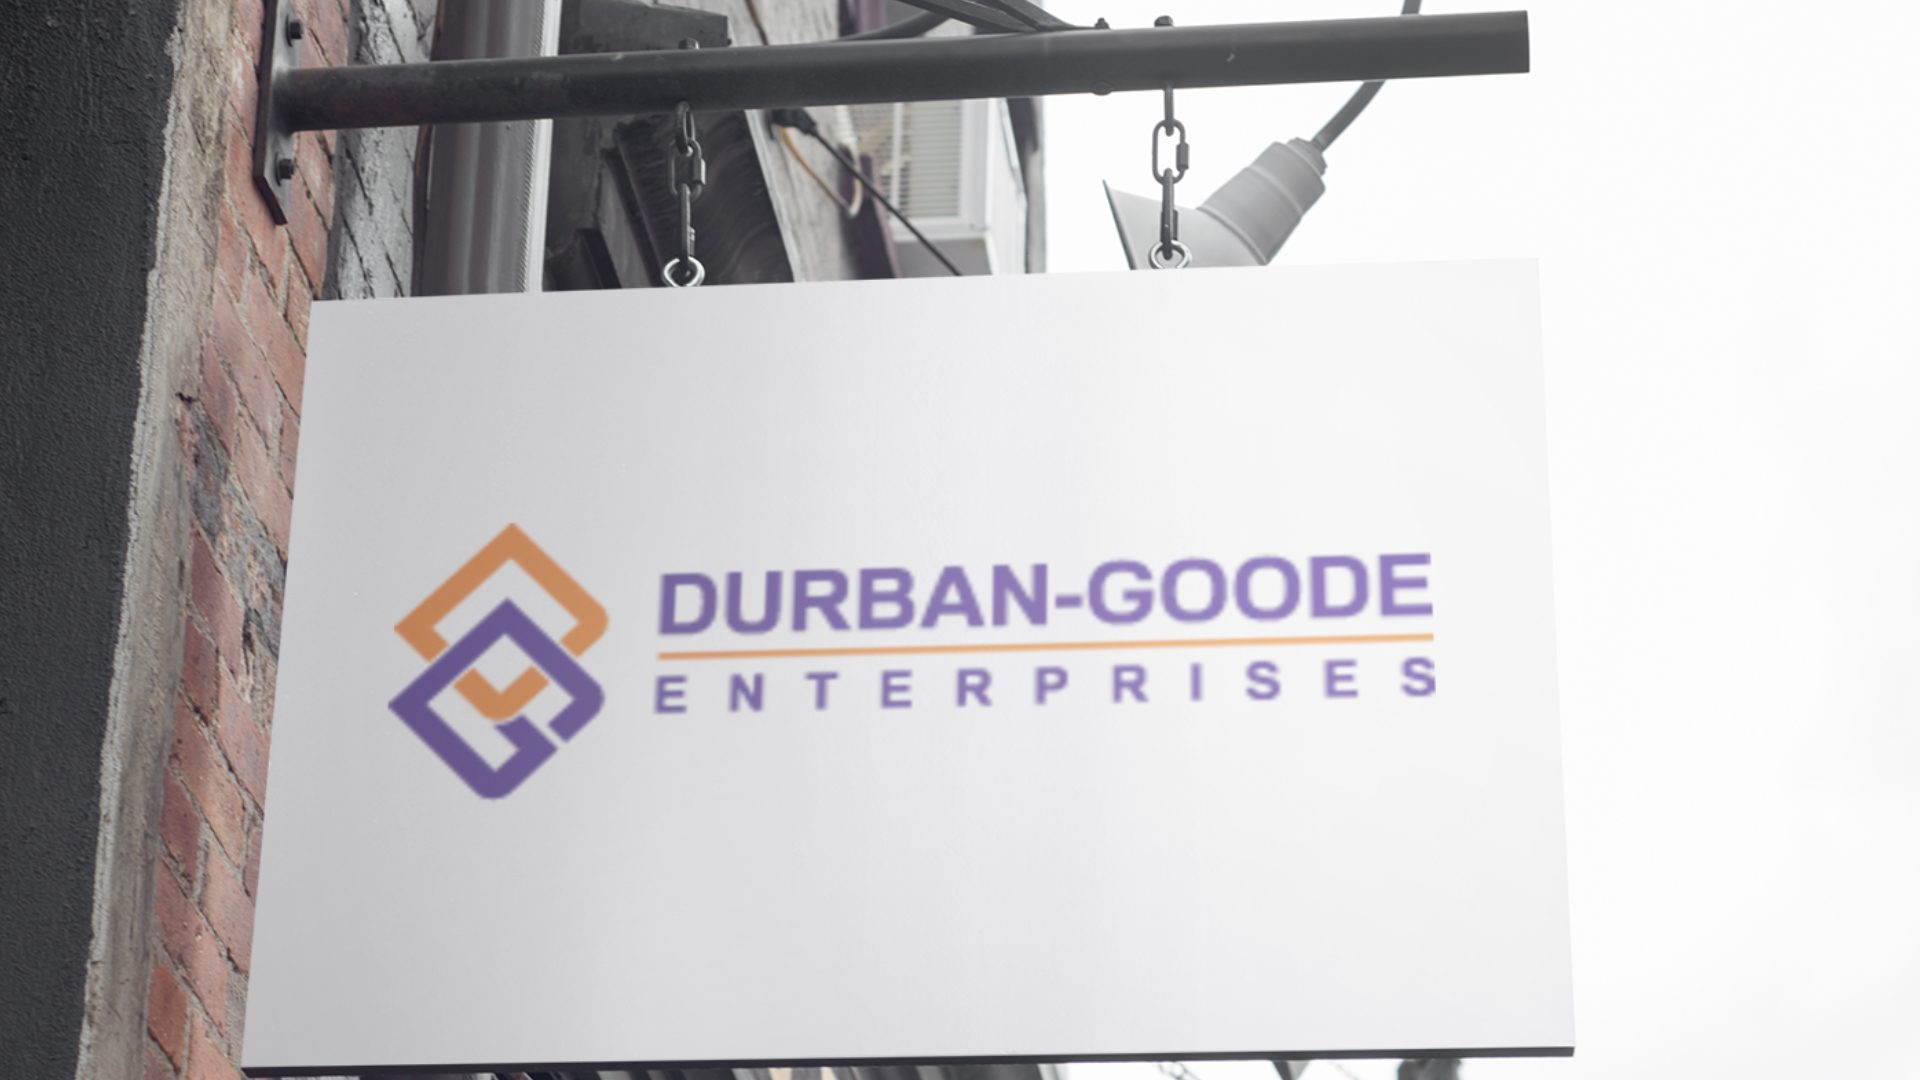 Durban-Goode Enterprises - 2021 Logo (8)